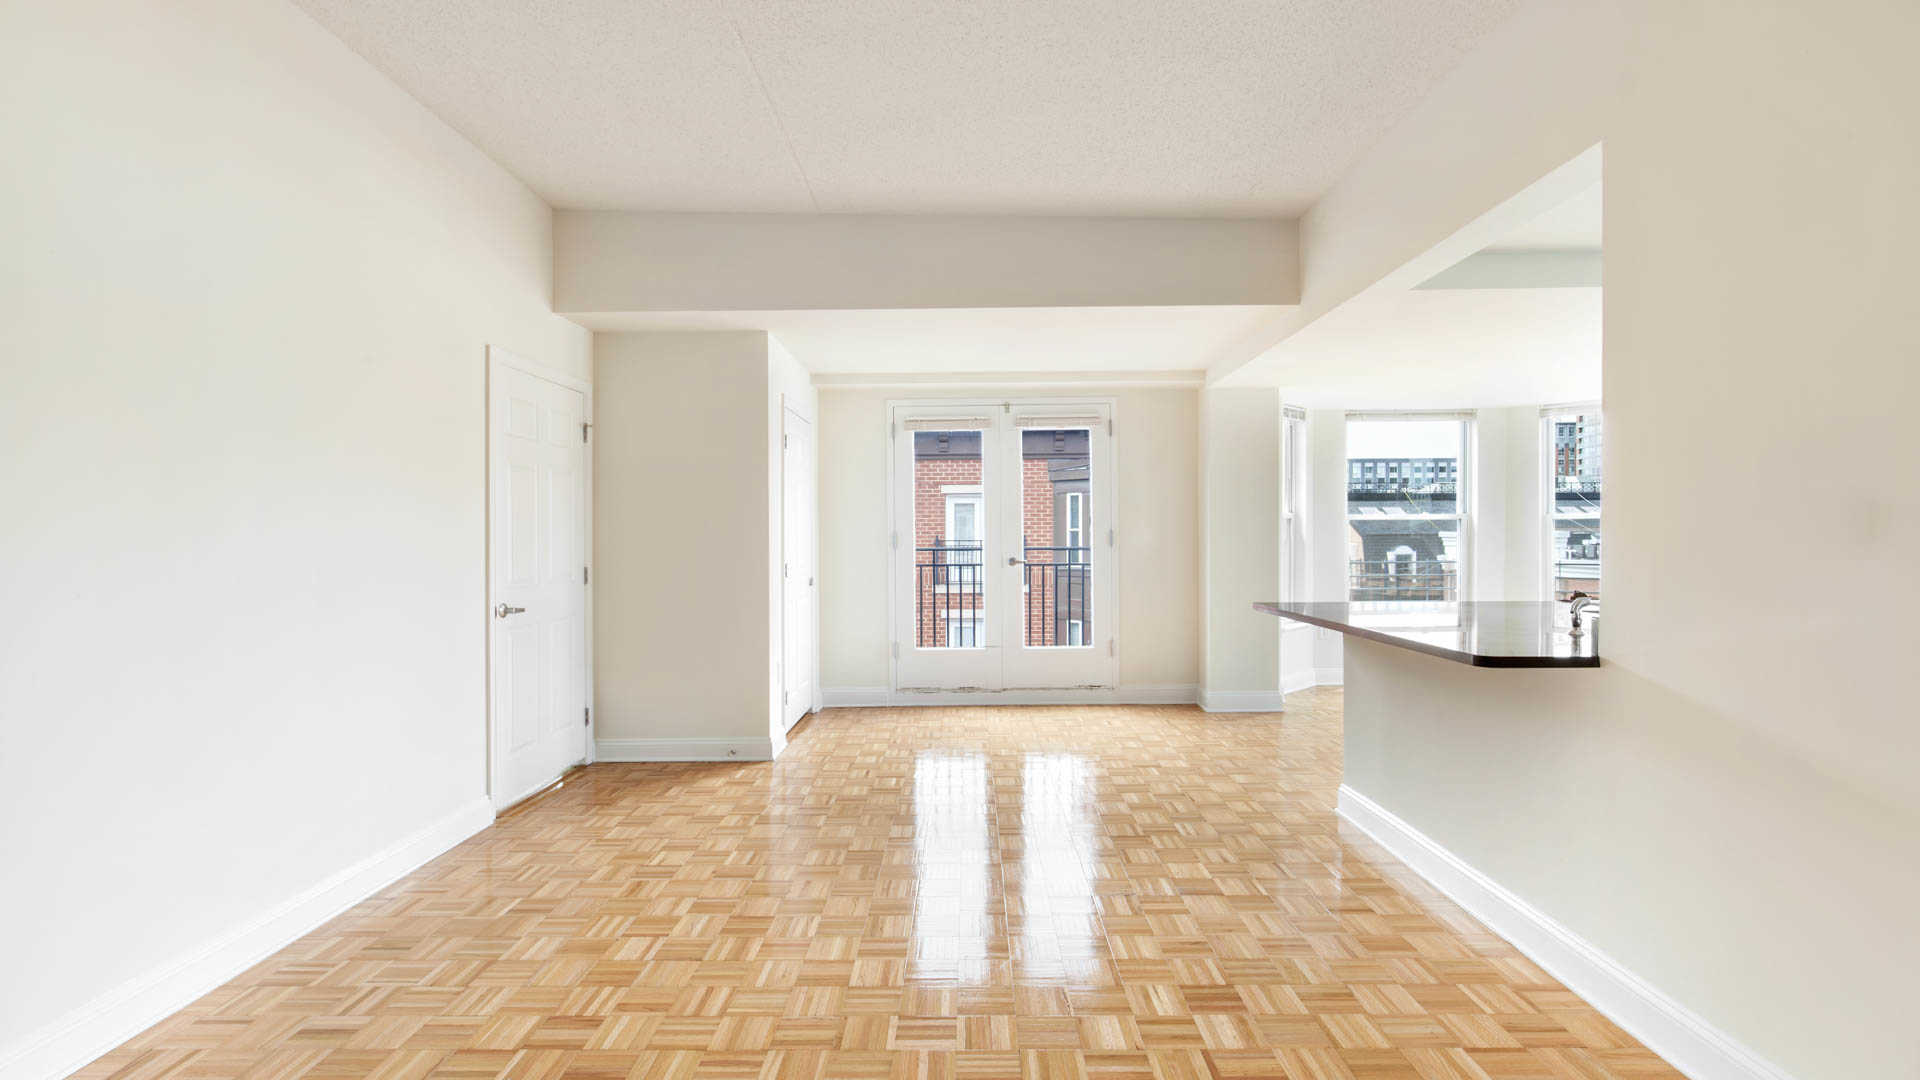 Living and Dining Room with Parquet Hard Surface Flooring